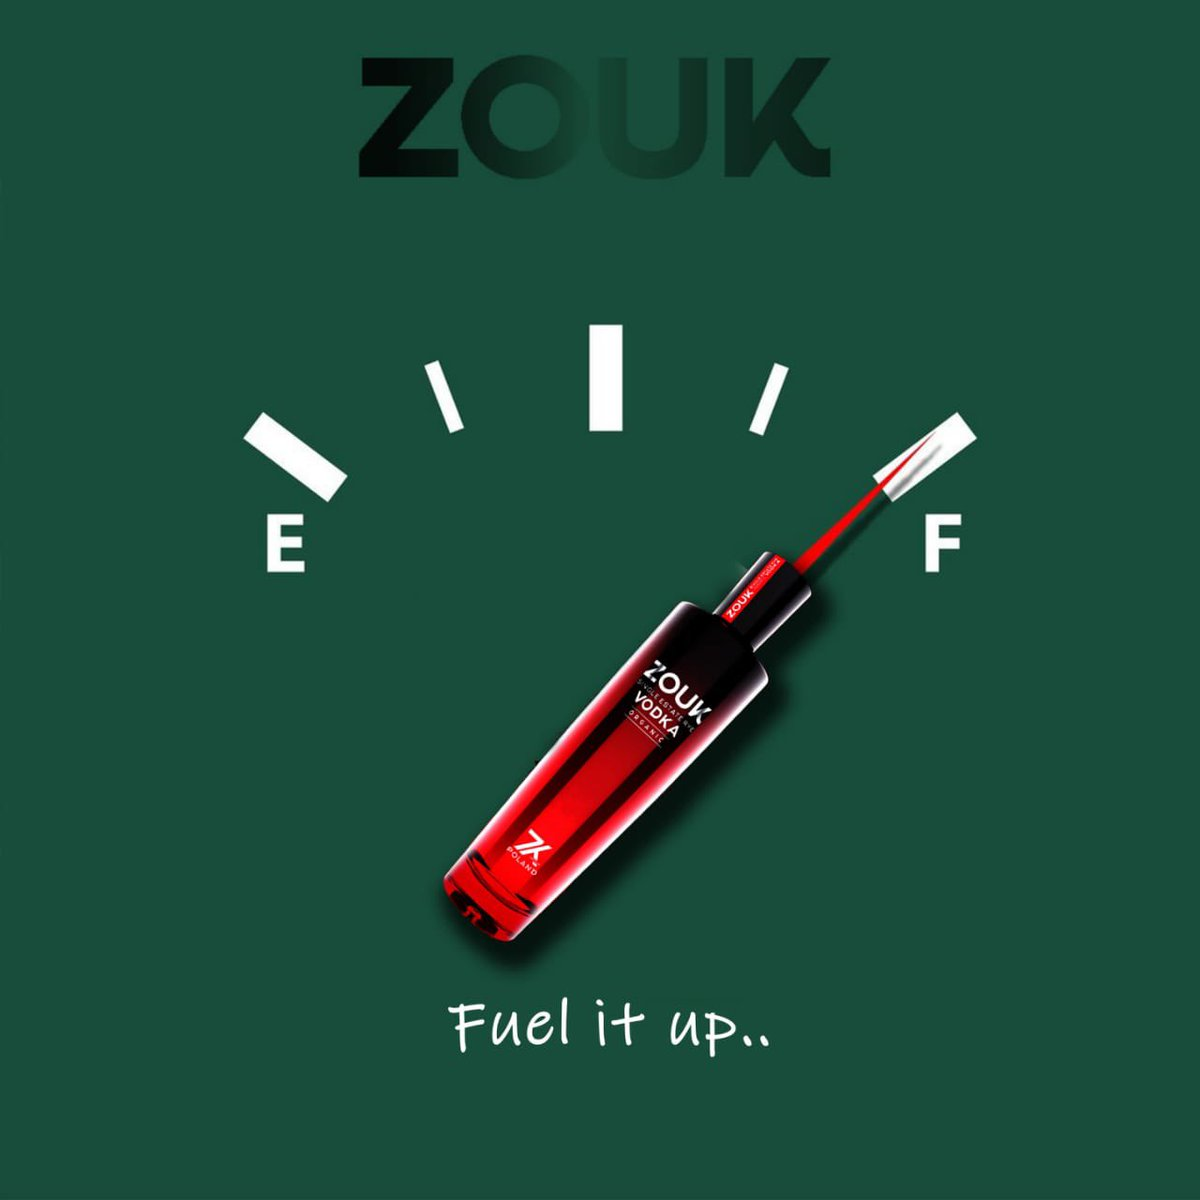 Fuel it up    Because it's Saturday Night 😎  #zoukvodka #vodka #saturdayvibes #saturdayevening #vodka🍸